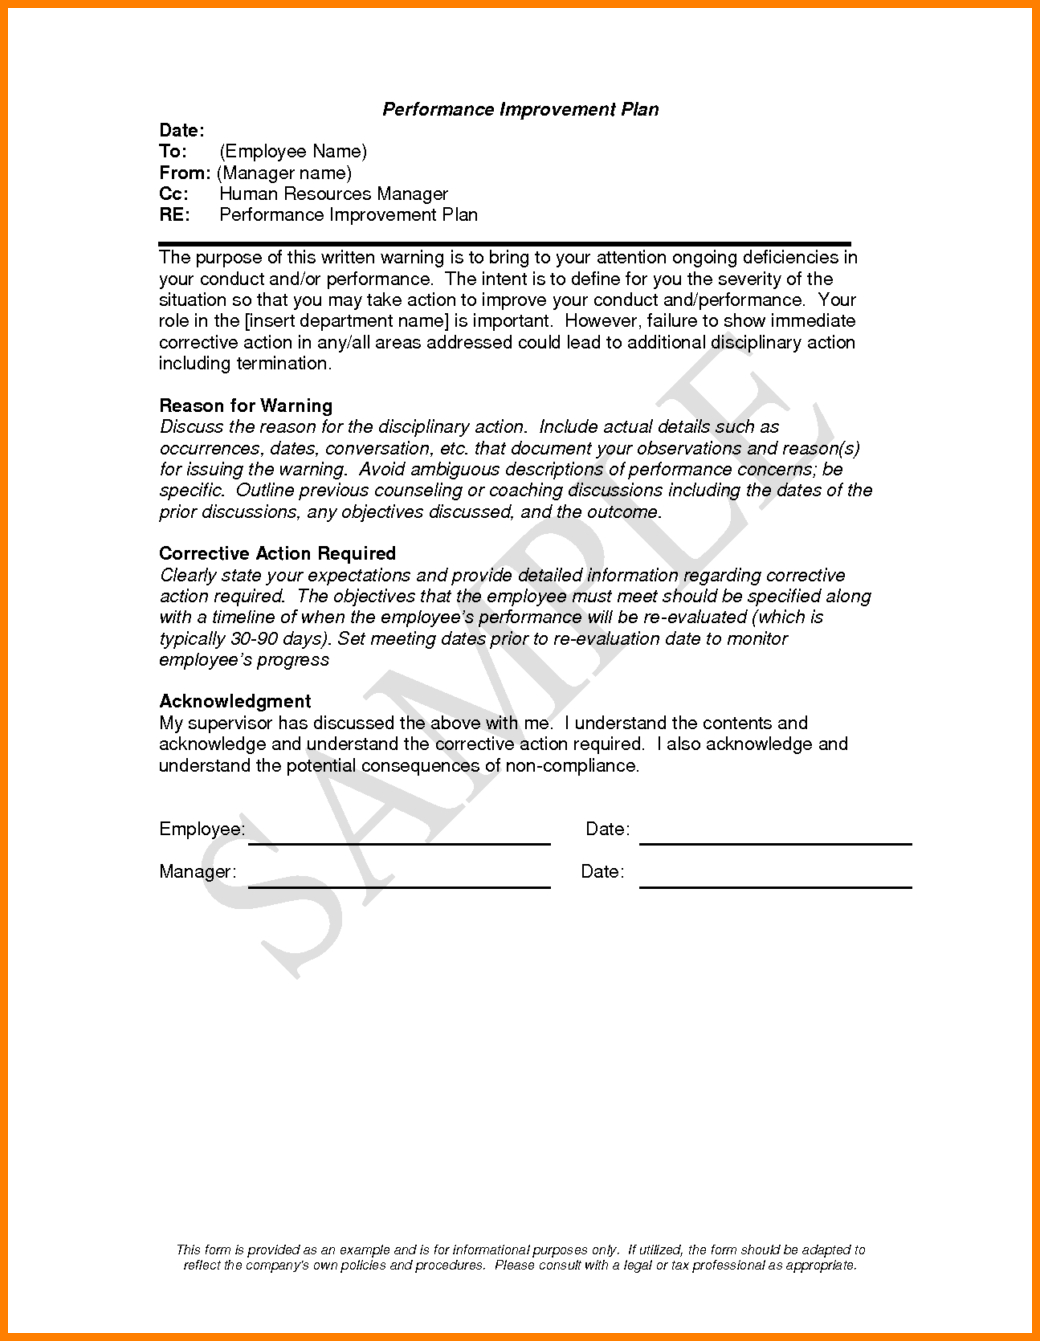 Performance Improvement Plan Letter Template - Employee Improvement Plan form Bing Images